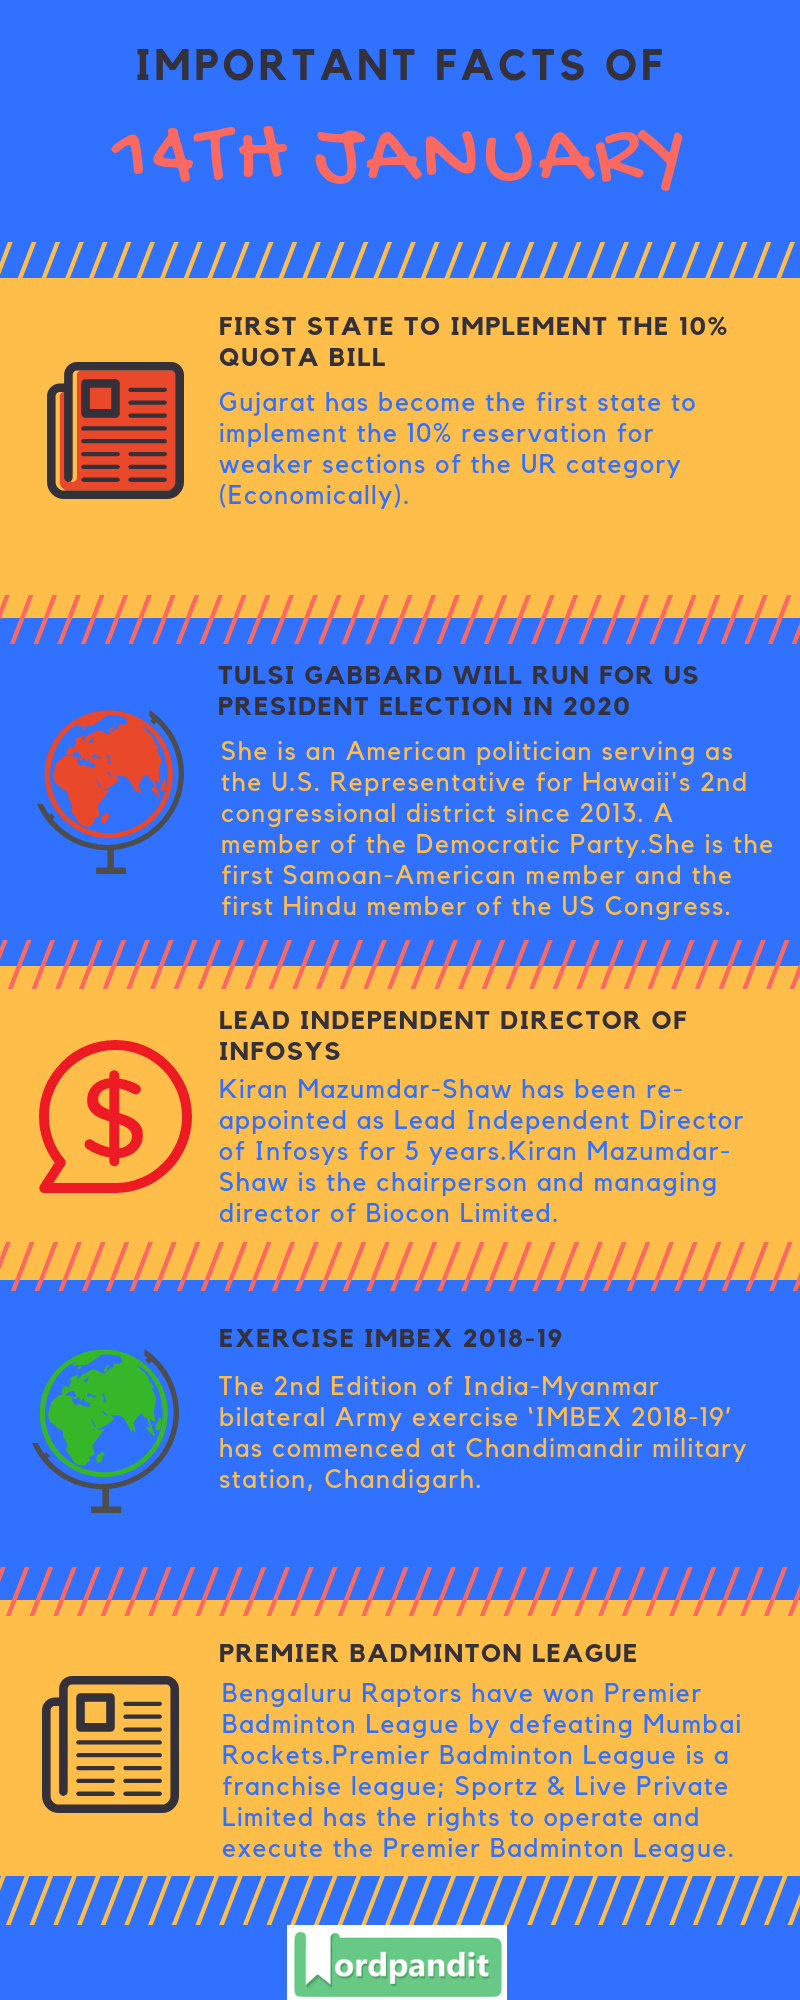 Daily Current Affairs 14 January 2019 Current Affairs Quiz 14 January 2019 Current Affairs Infographic